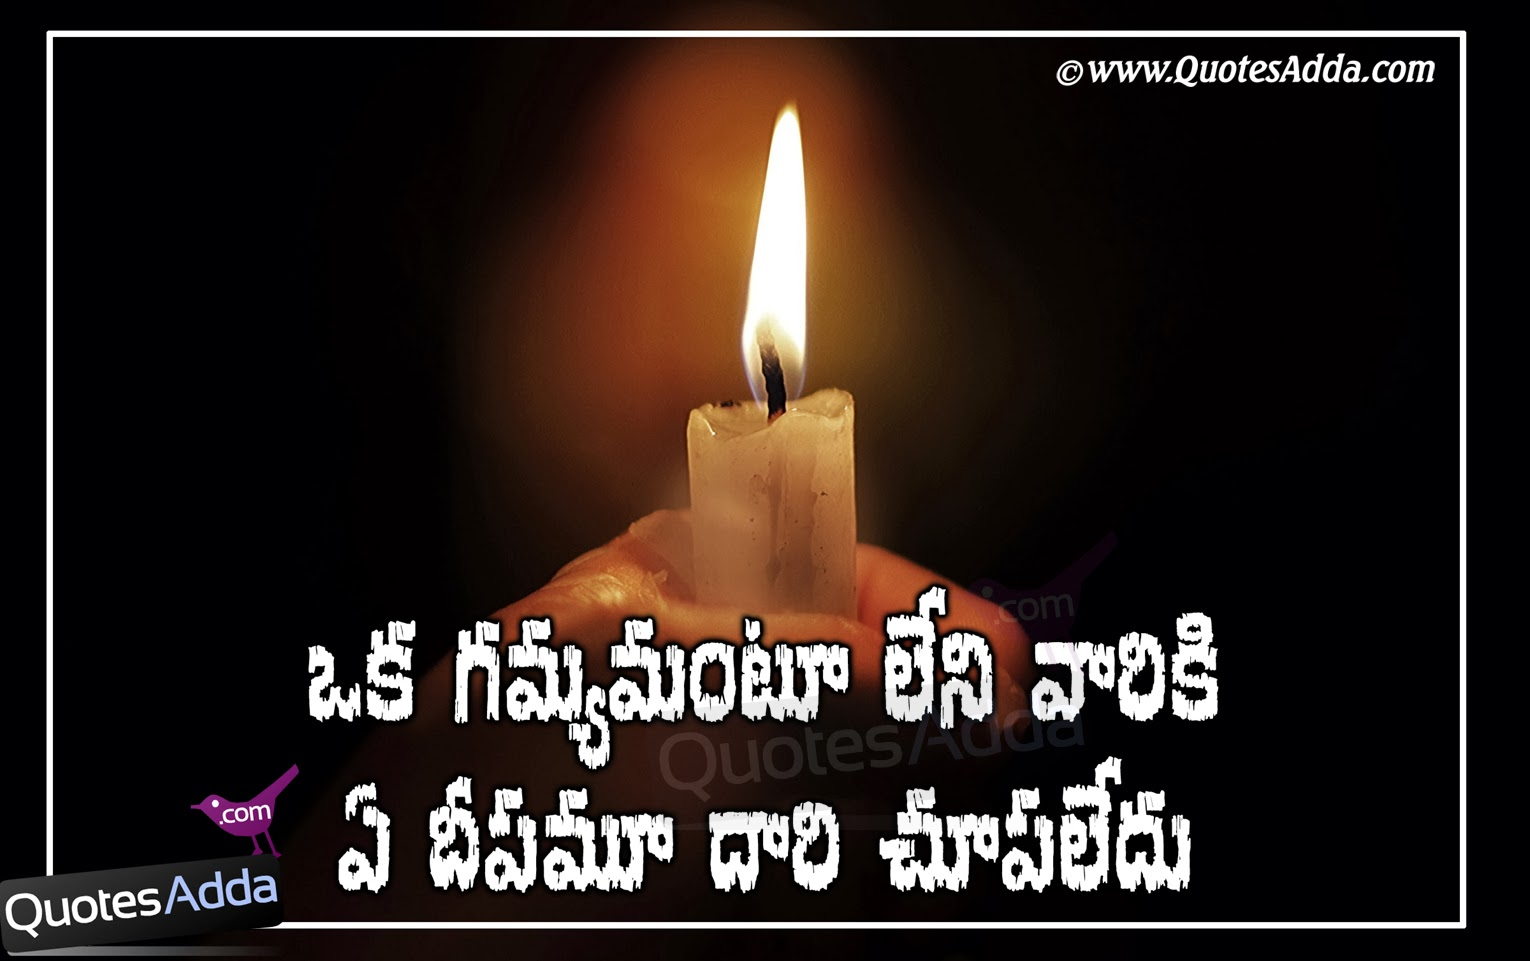 Quotes About Life In Telugu On Quotestopics